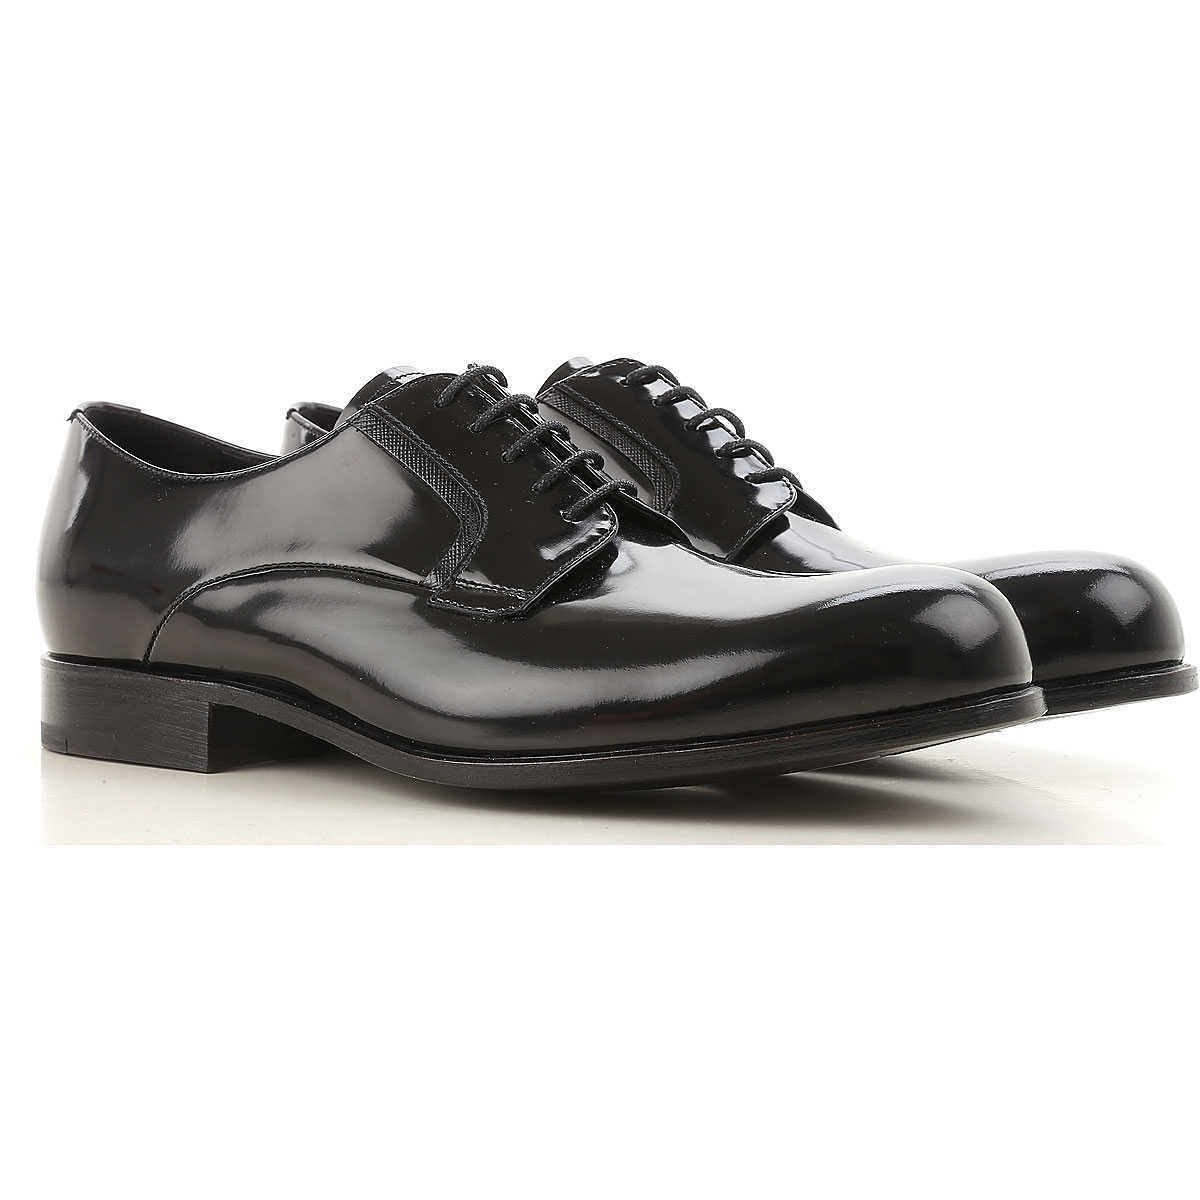 Prada Lace Up Shoes for Men Oxfords Derbies and Brogues On Sale in Outlet DK - GOOFASH - Mens FORMAL SHOES